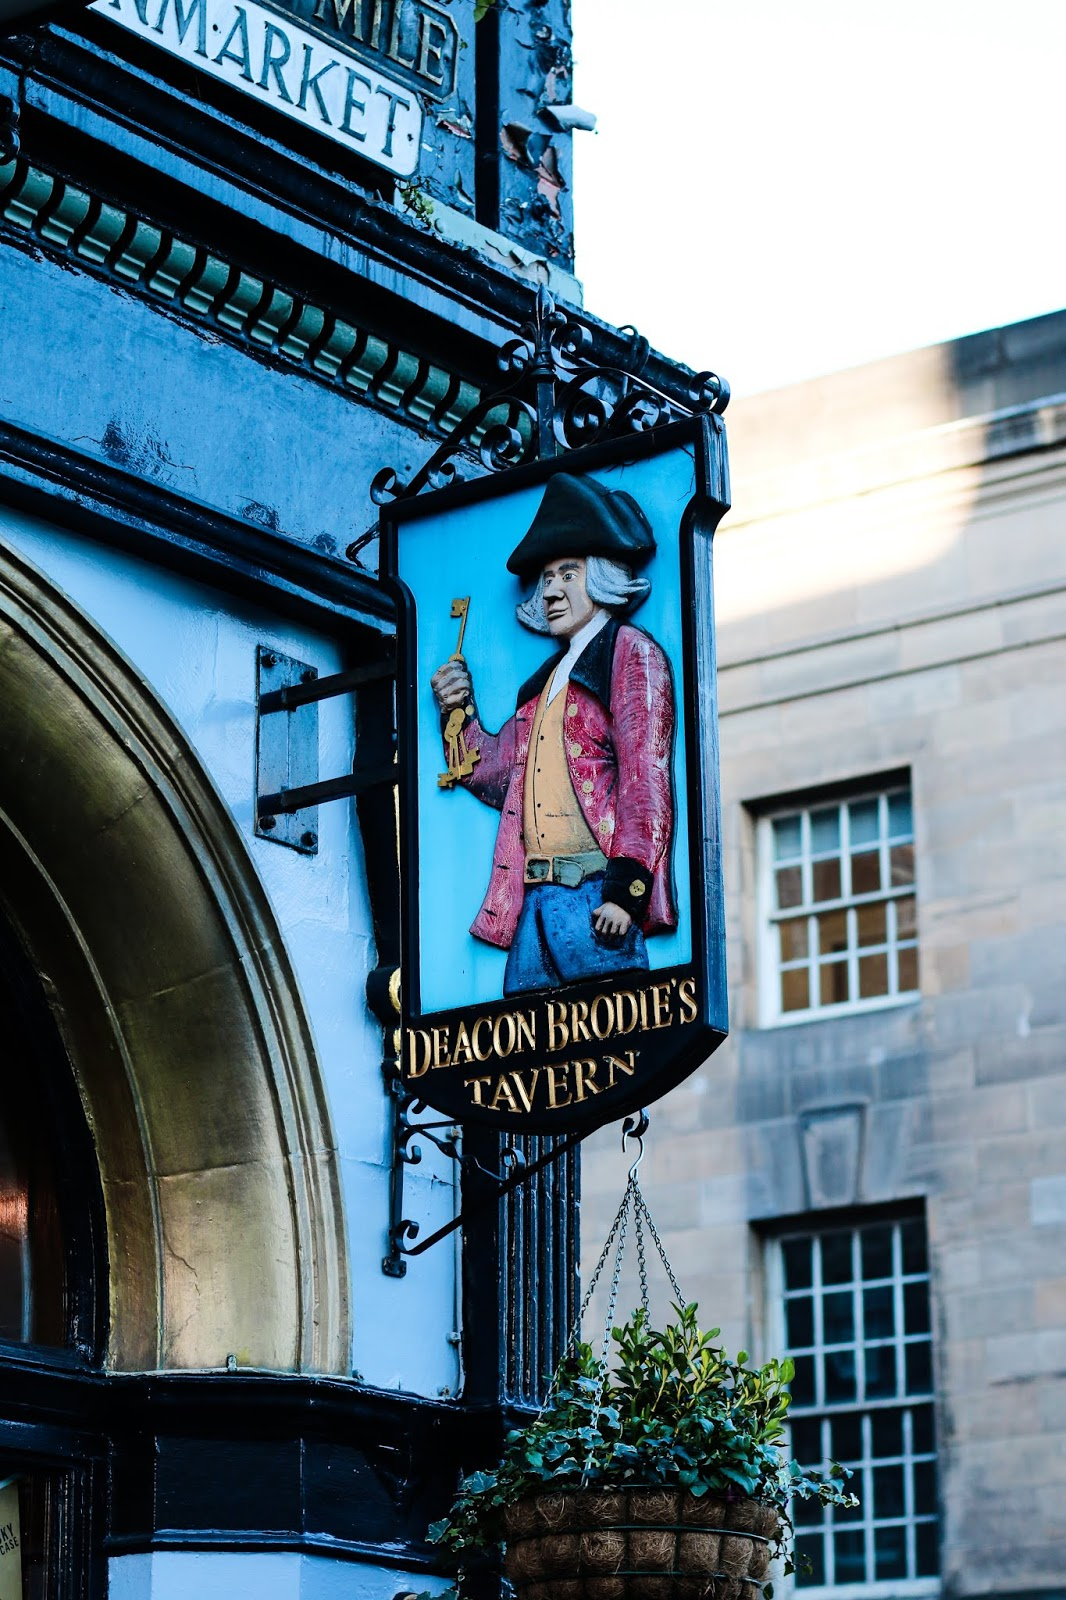 a close up of the deacon brodies tavern sign in Edinburgh